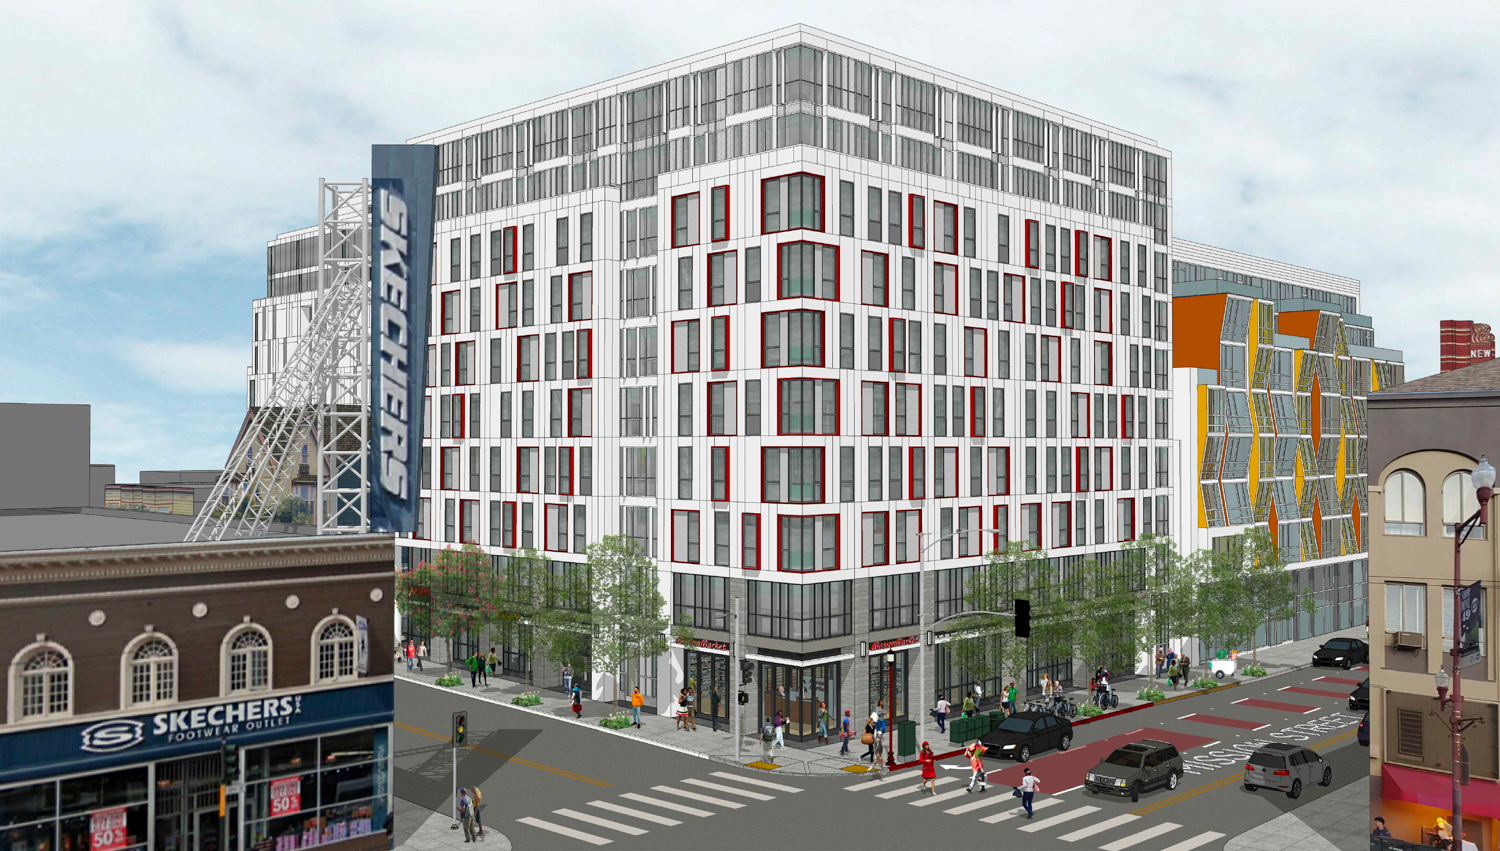 2588 Mission Street, rendering by Ian Birchall and Associates